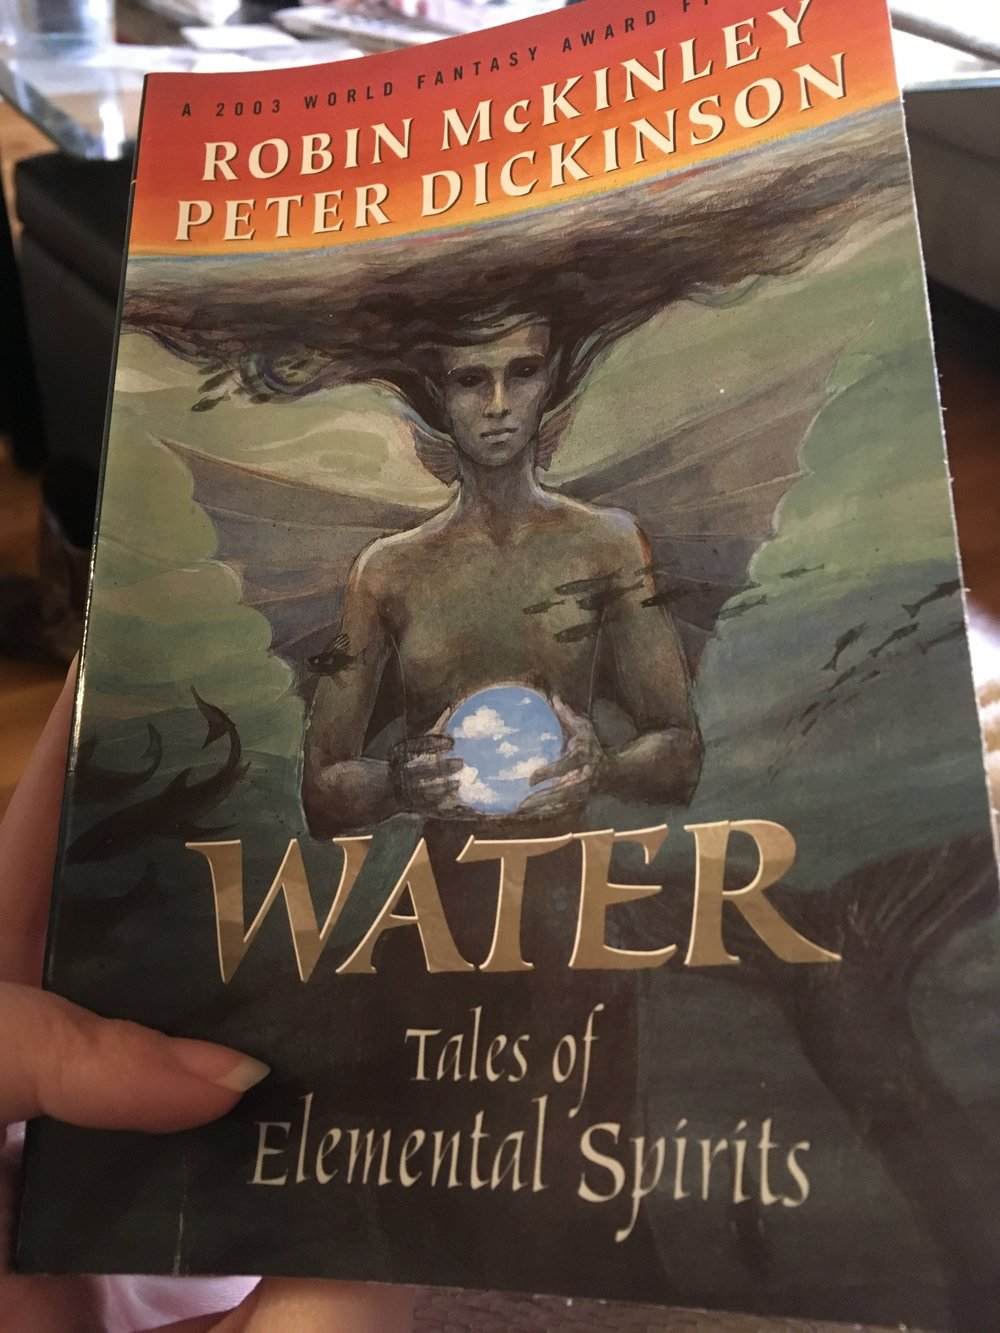 Currently reading,Water: Tales of Elemental Spirits by Robin McKinley and Peter Dickinson. I'm really enjoying it!